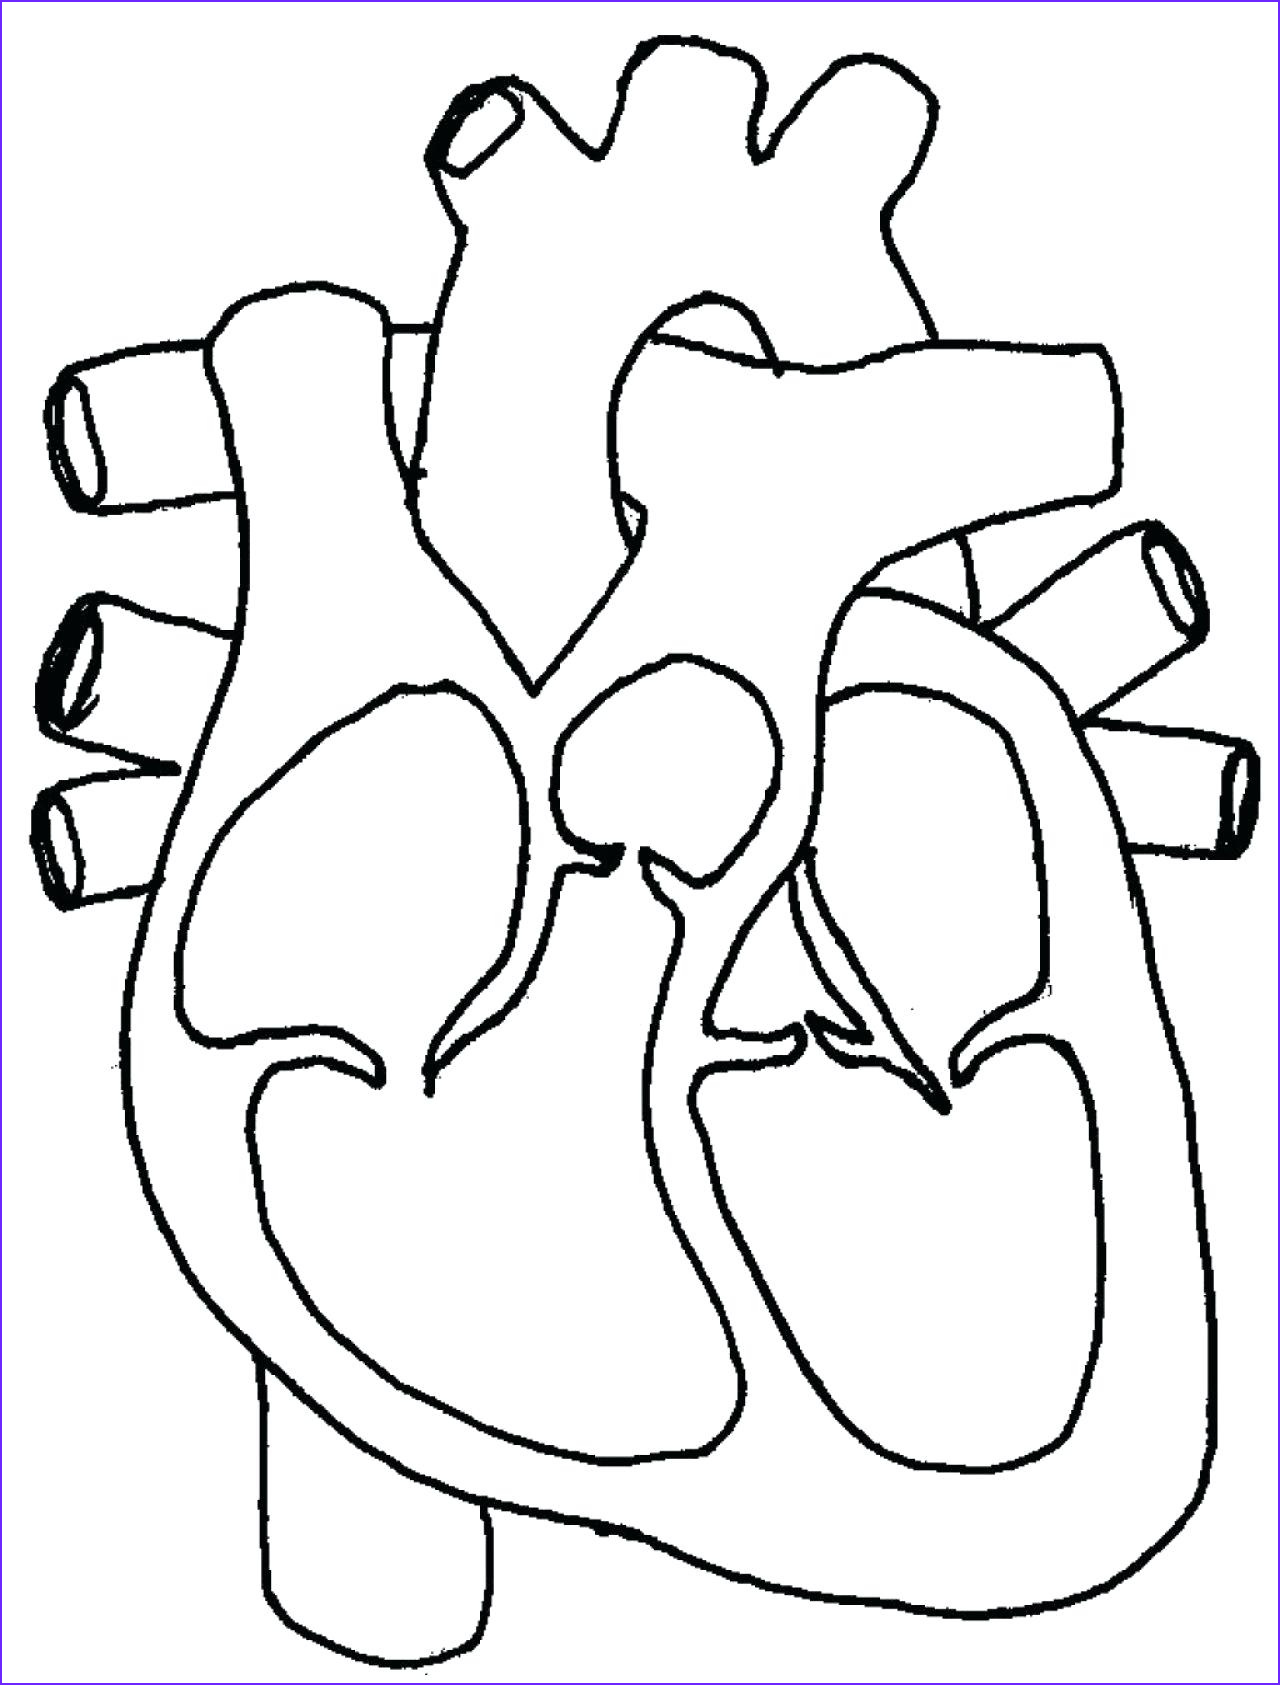 Circulatory System Coloring Sheet Inspirational Gallery Cardiovascular System Drawing at Getdrawings